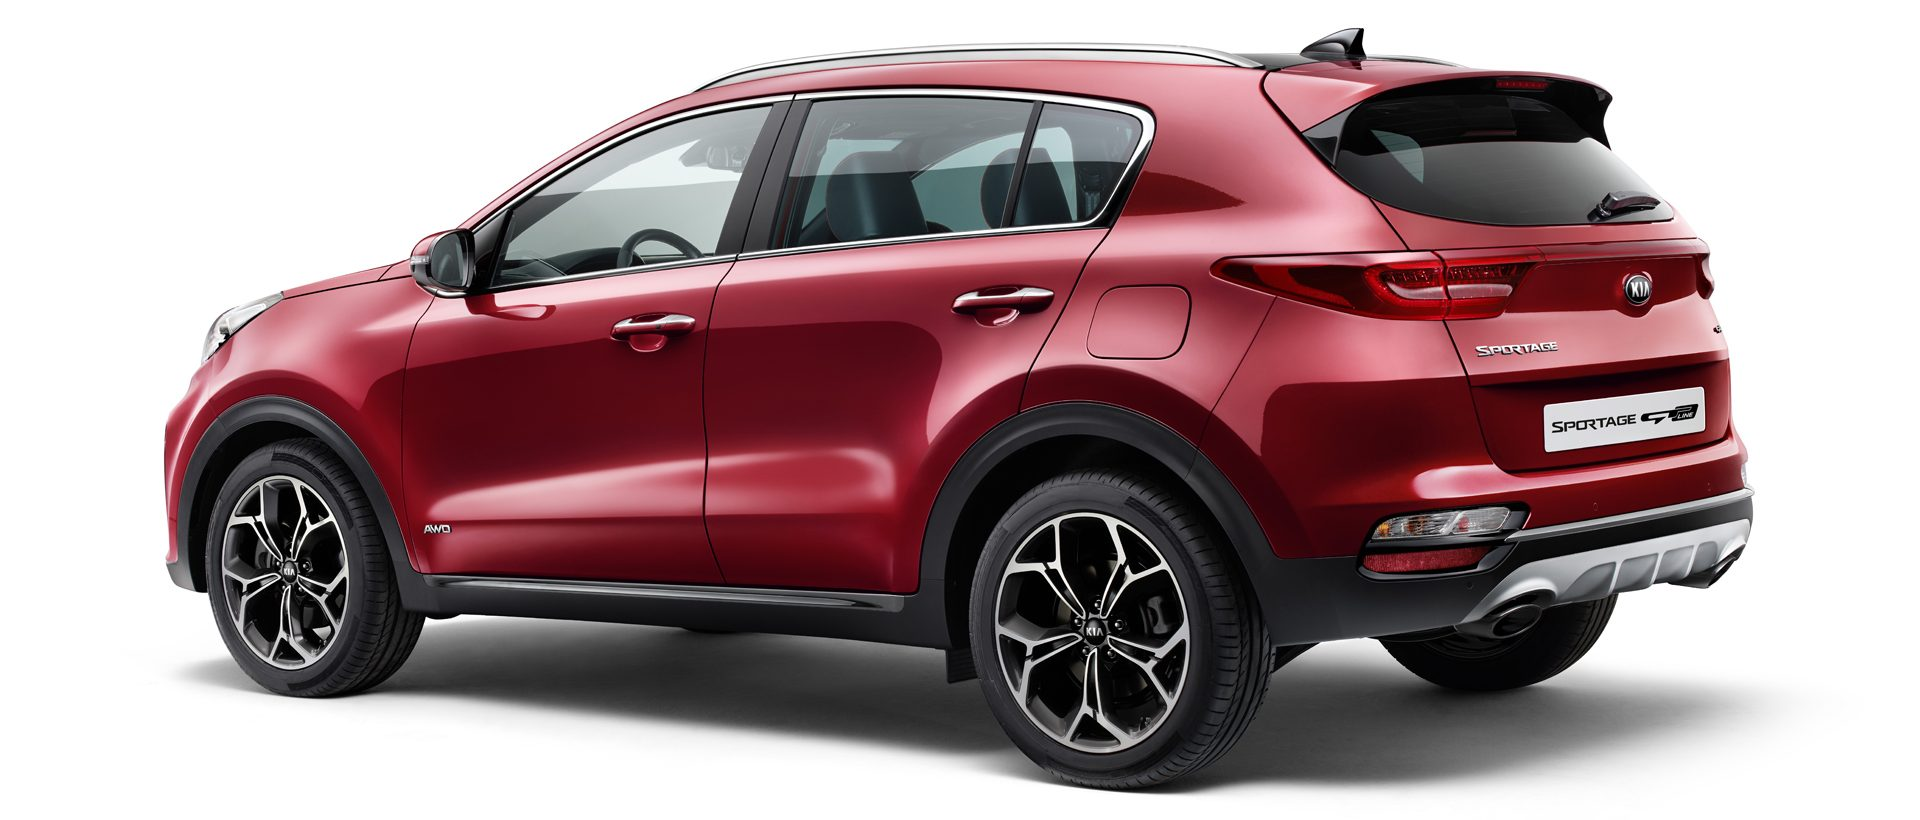 The popular Korean SUV features a facelifted exterior, an updated interior and new onboard technologies that include upgraded infotainment and a set of active driver aids.